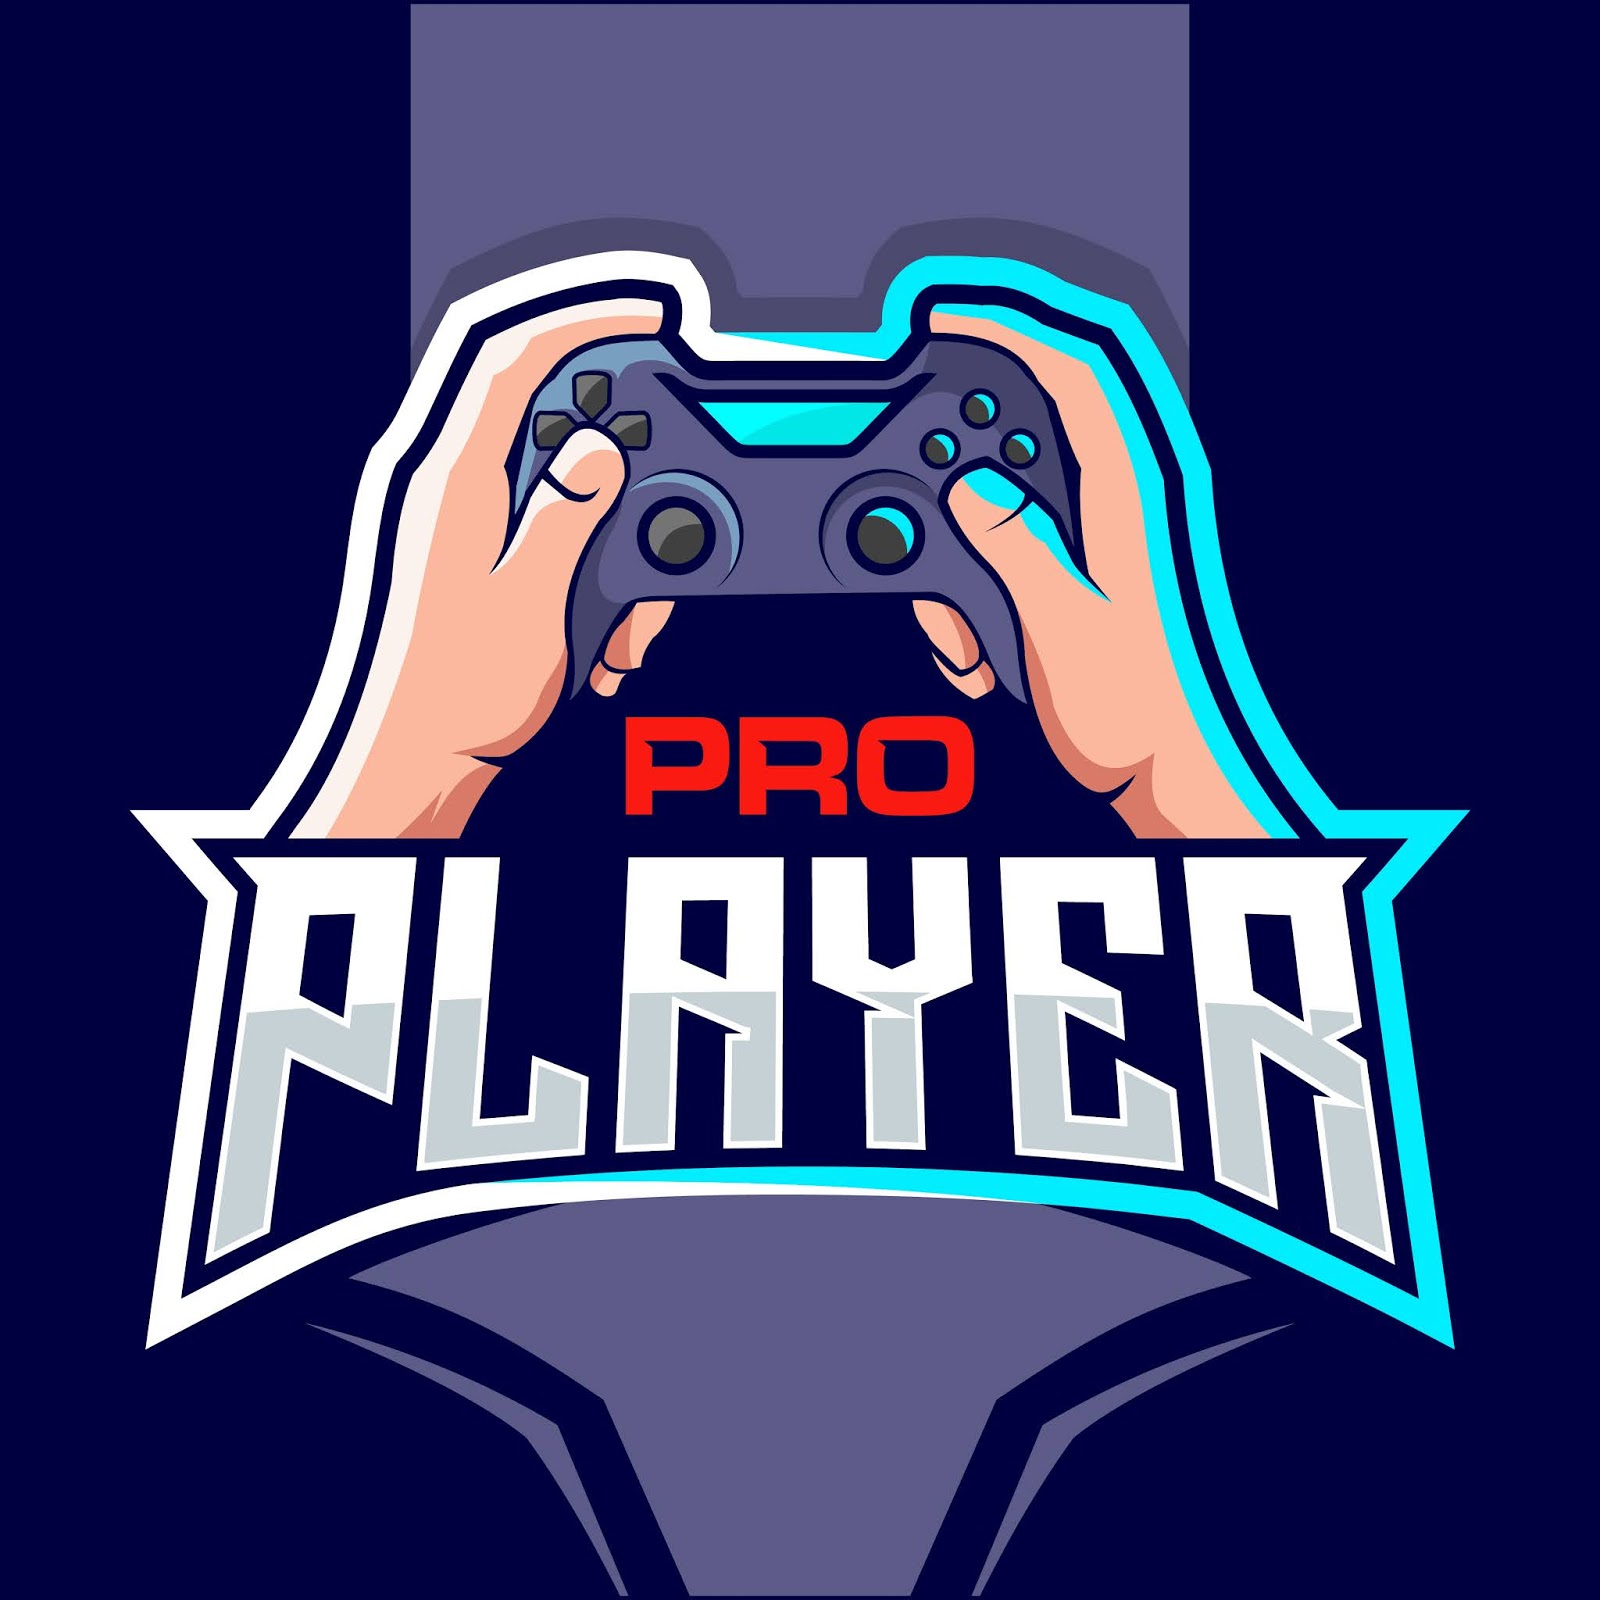 Pro Player Esport Game Funny Free Download Vector CDR, AI, EPS and PNG Formats